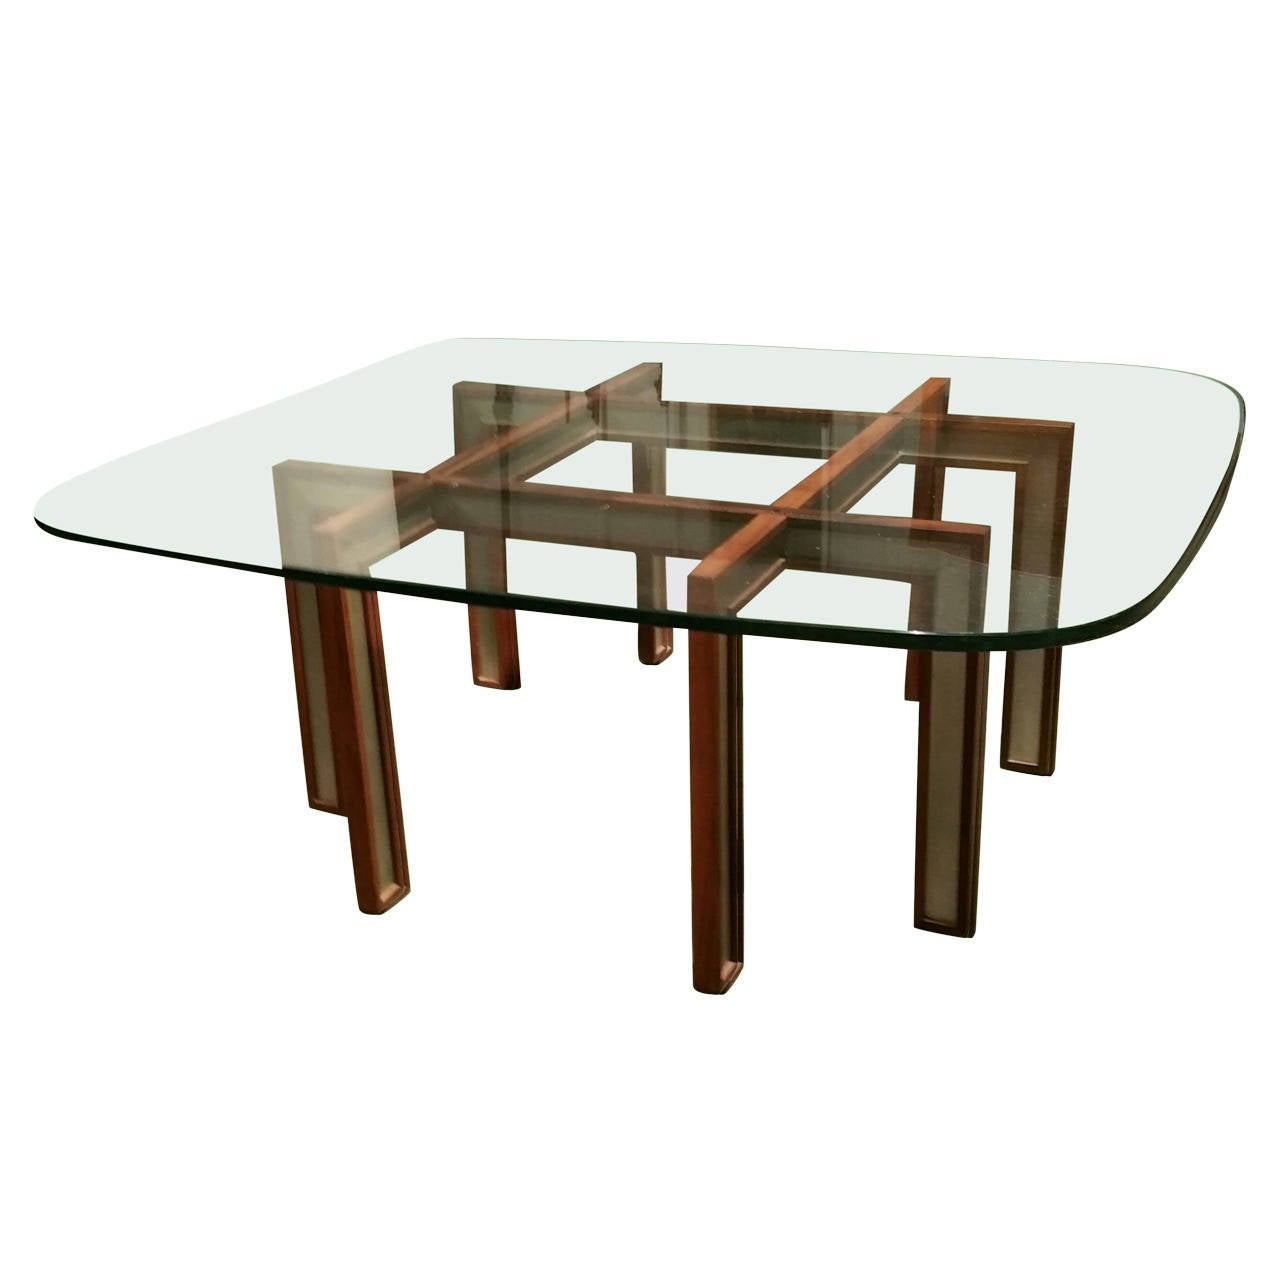 Rosewood and Brushed Steel Cocktail Table by Henning Korch